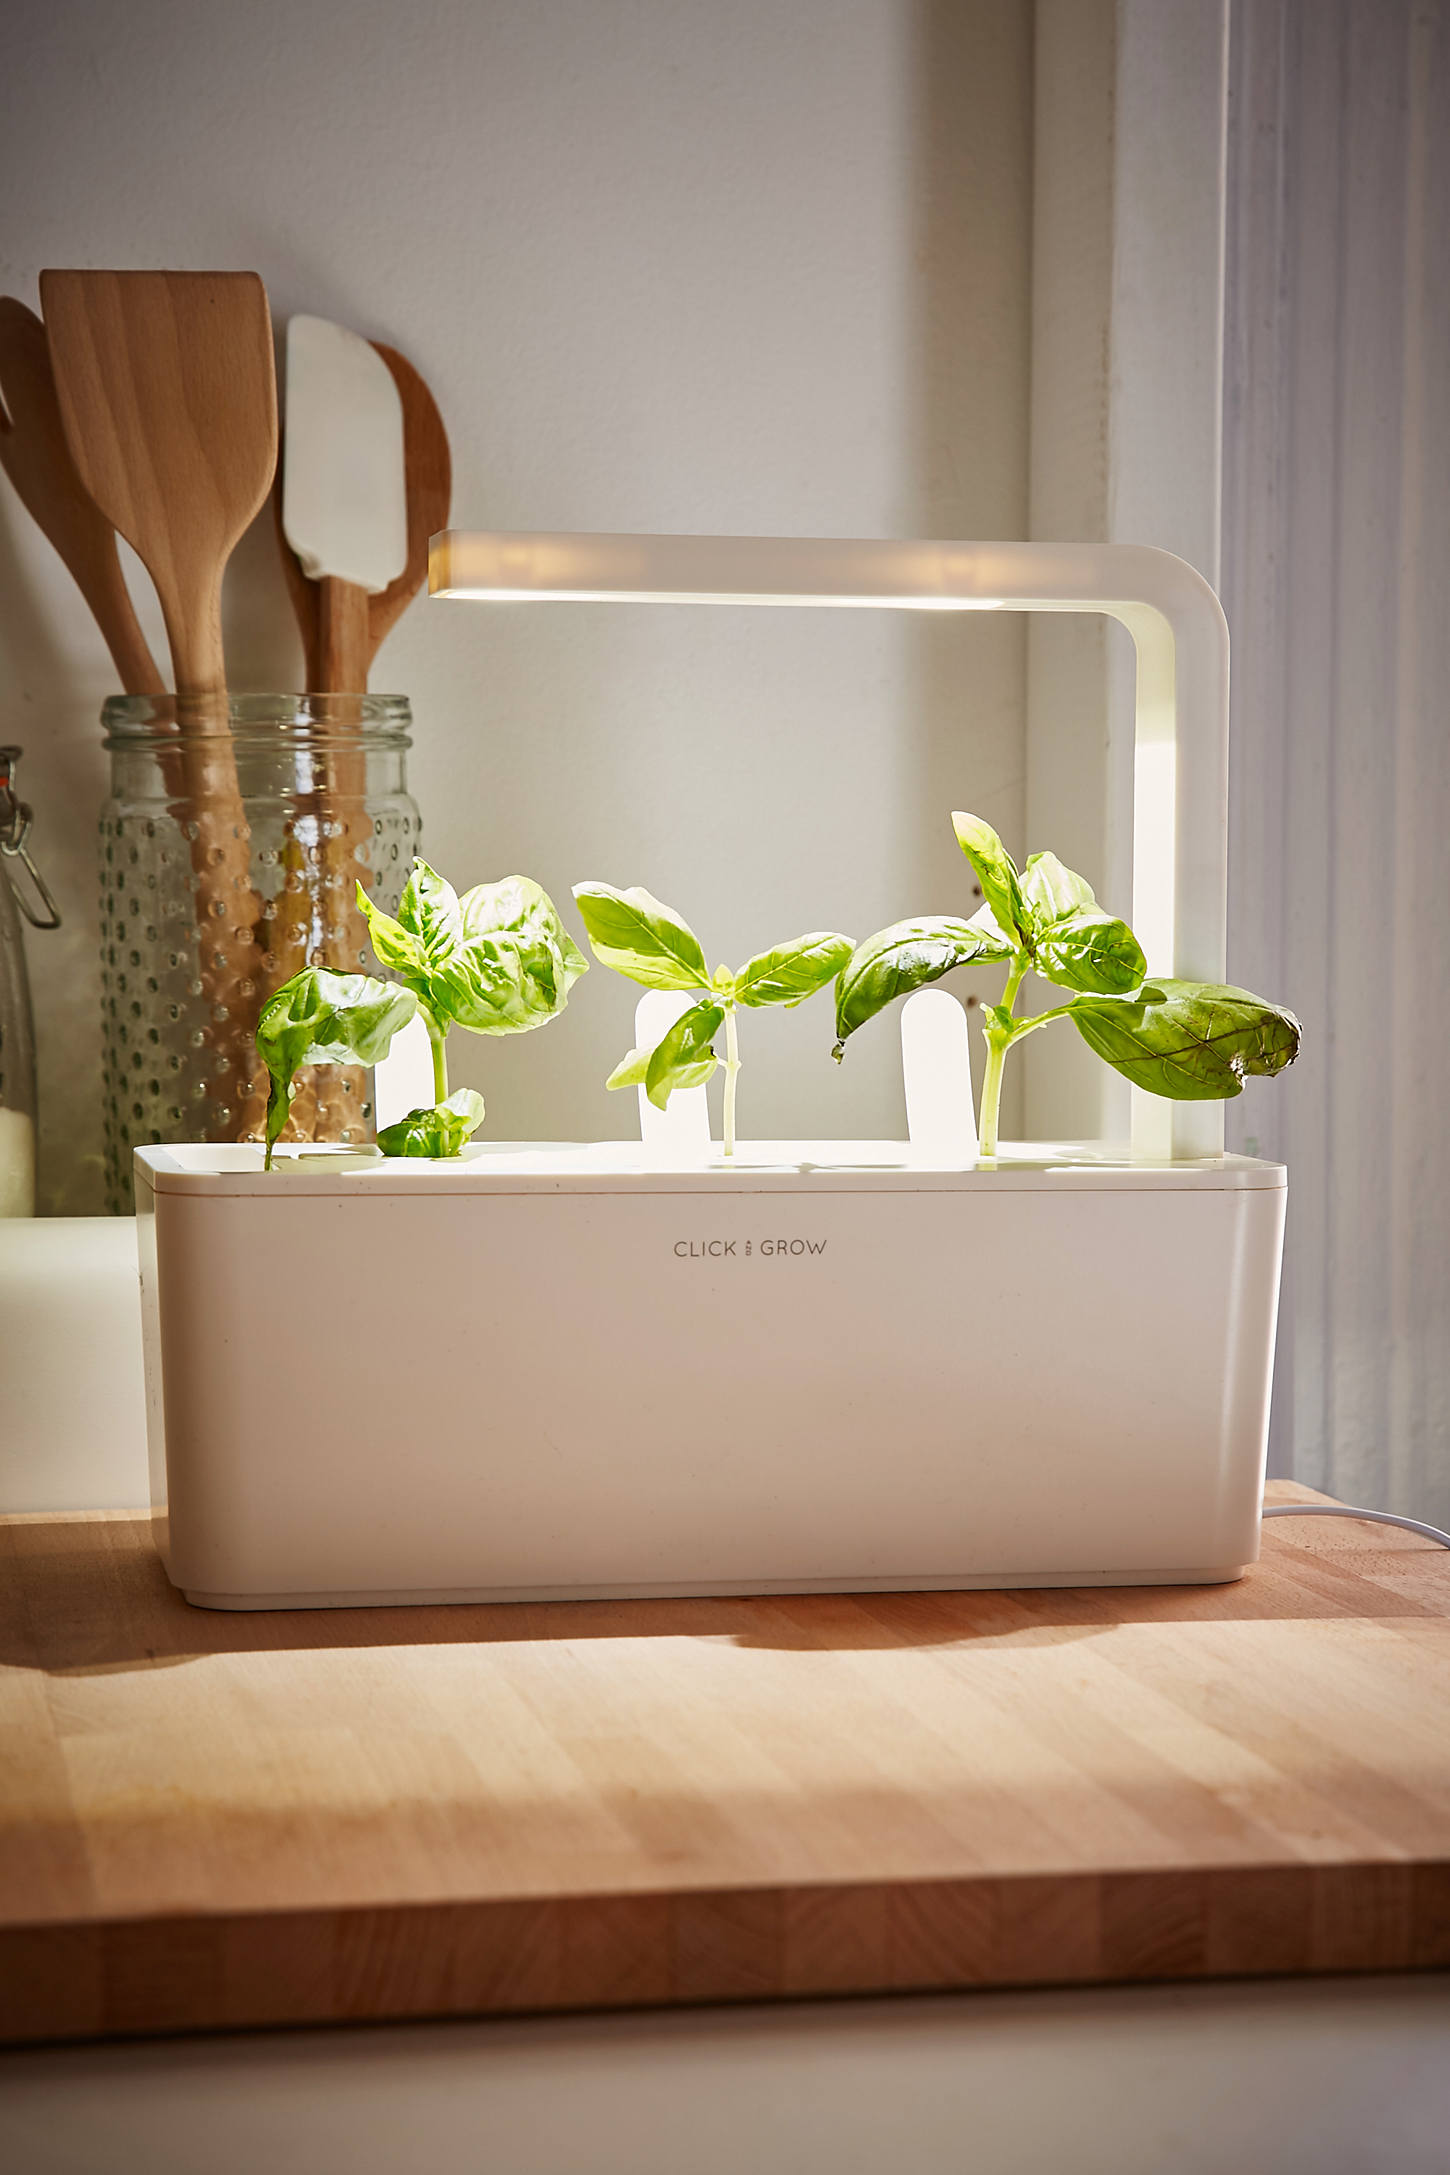 Herb Kitchen Garden Kit Click Grow Smart Herb Garden Starter Kit Urban Outfitters